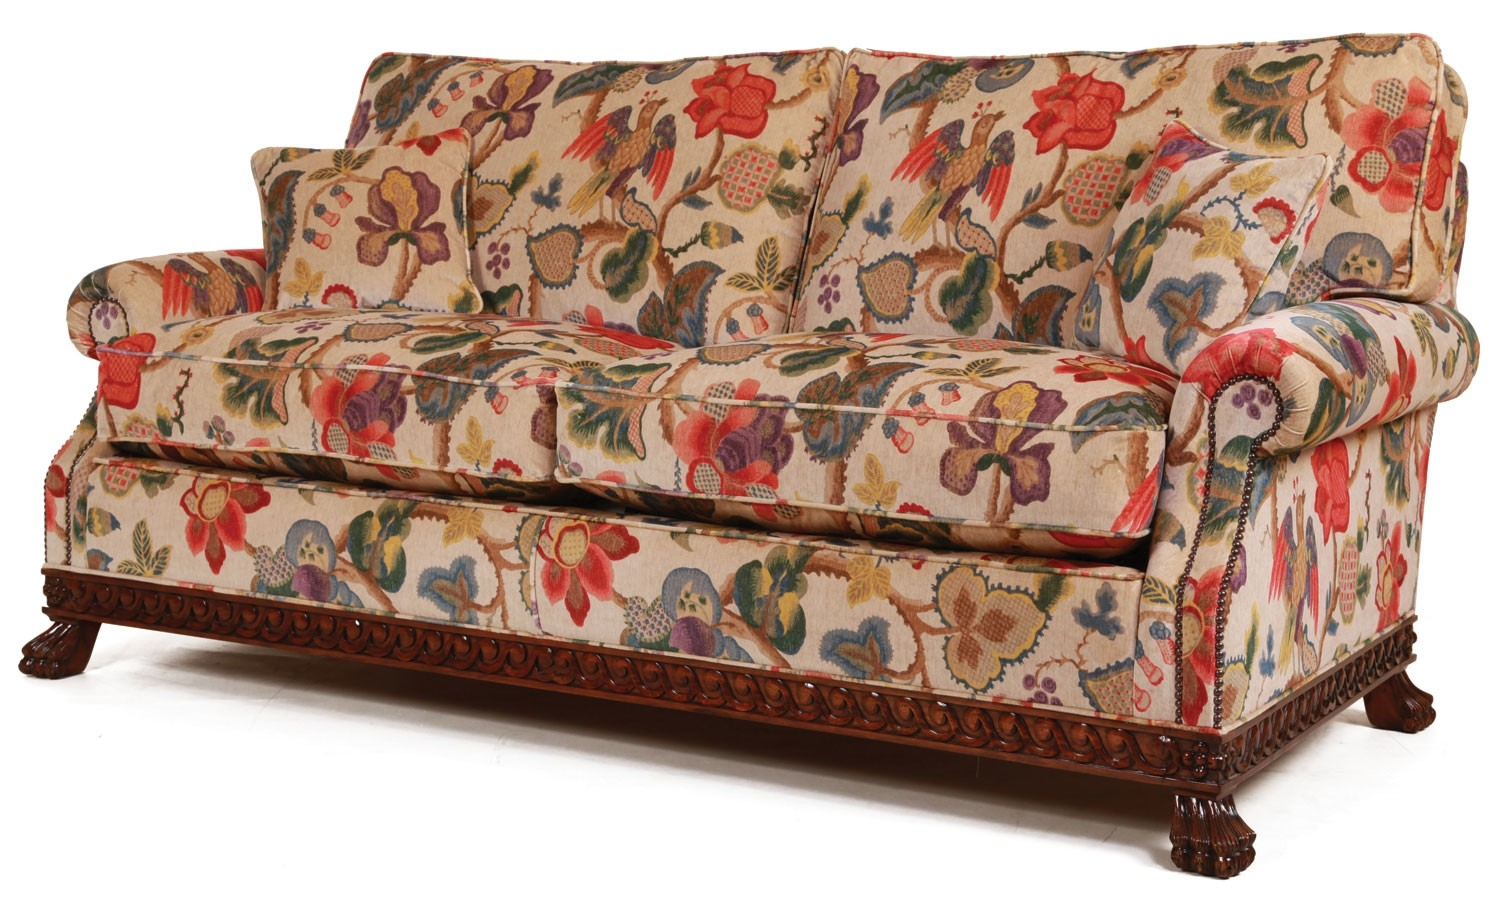 Floral Corner Sofas Order Free Fabric Swatches Loaf River Academy Intended For Chintz Fabric Sofas (Image 5 of 15)